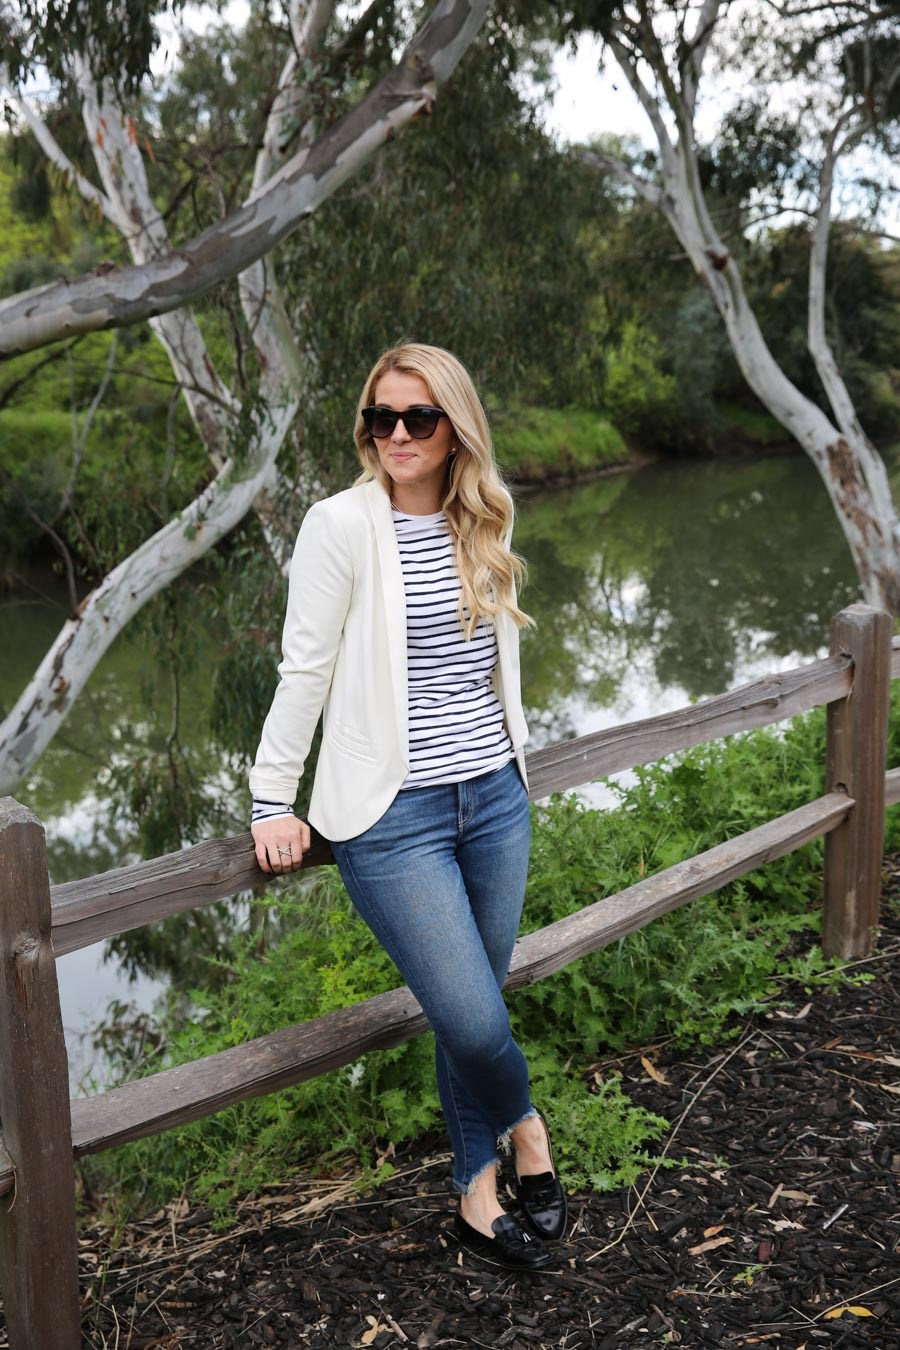 How to Wear a White Blazer - Outfit Ideas